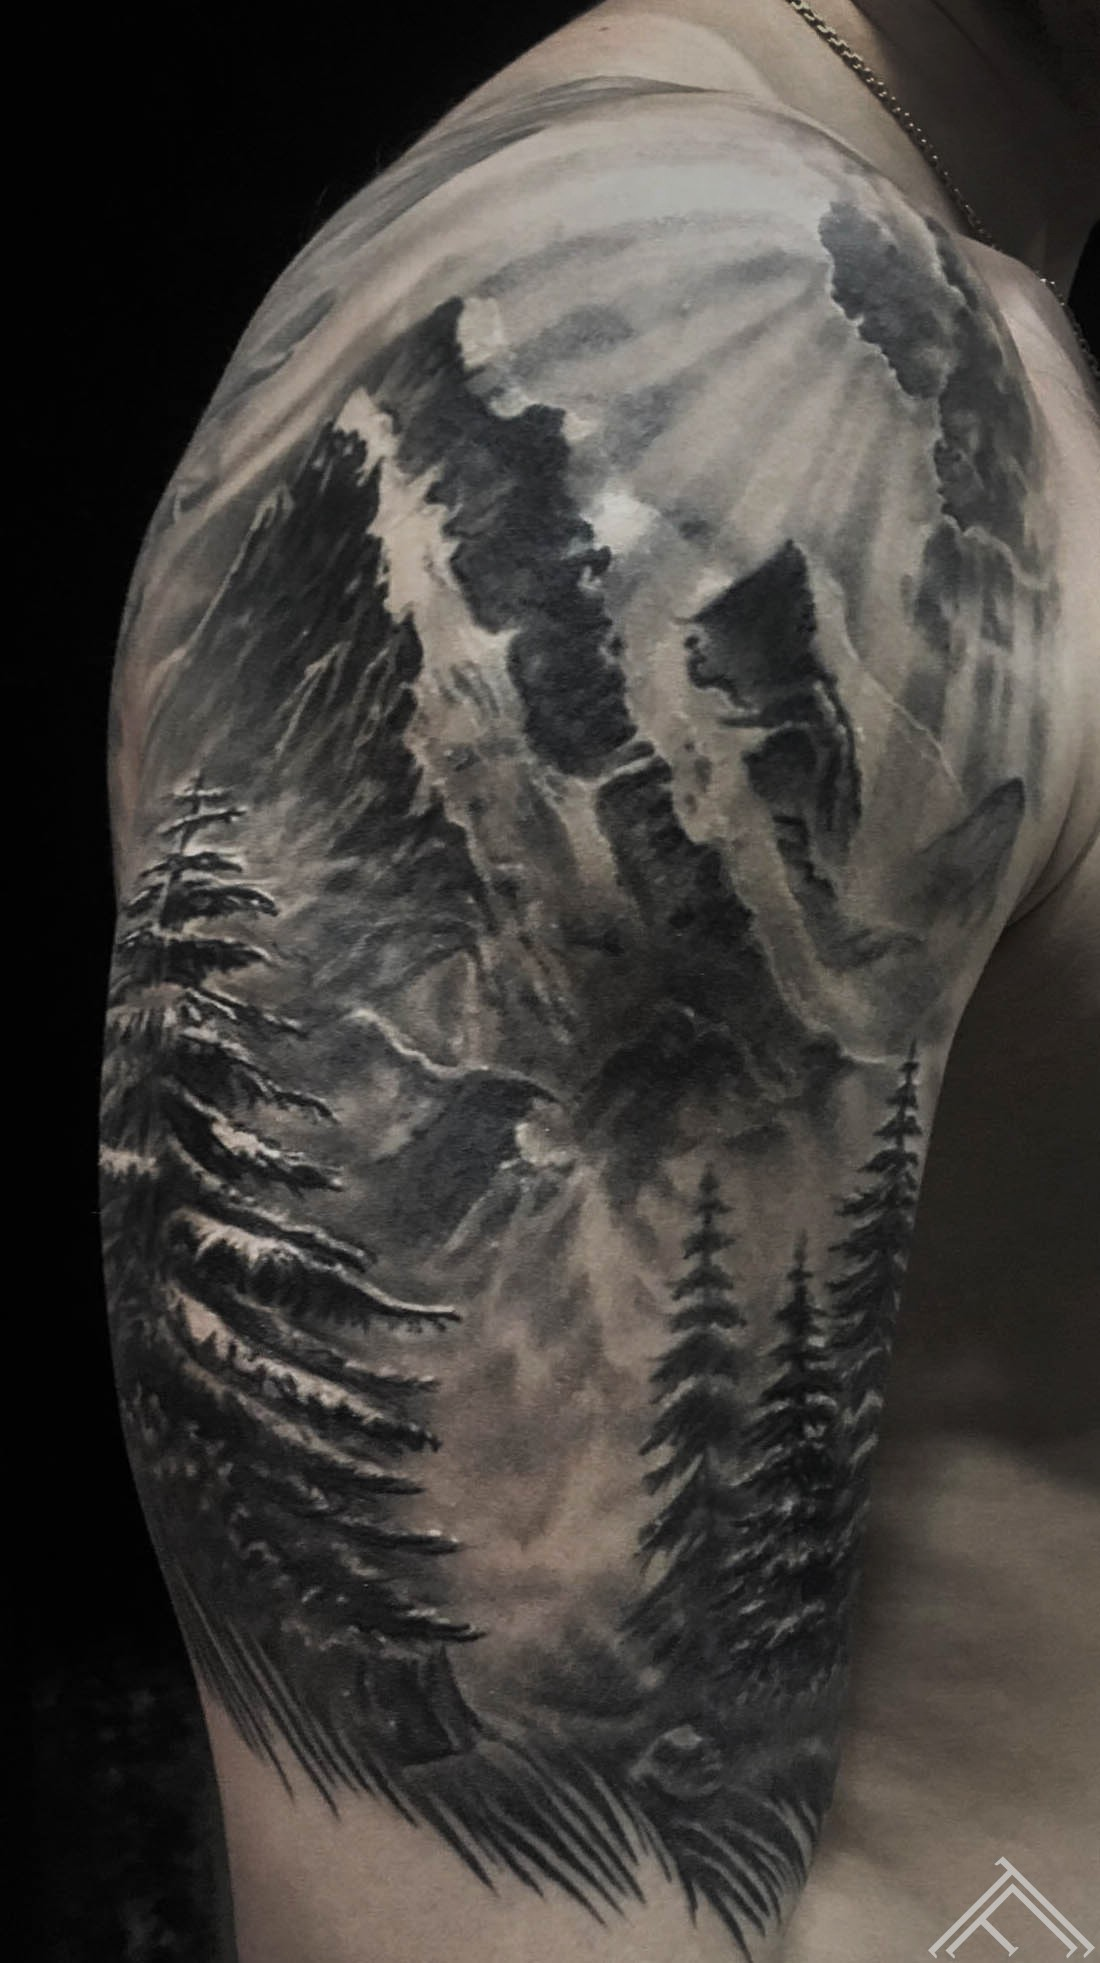 pine-egles-forest-mountains-marispavlo-art-tattoofrequency-riga